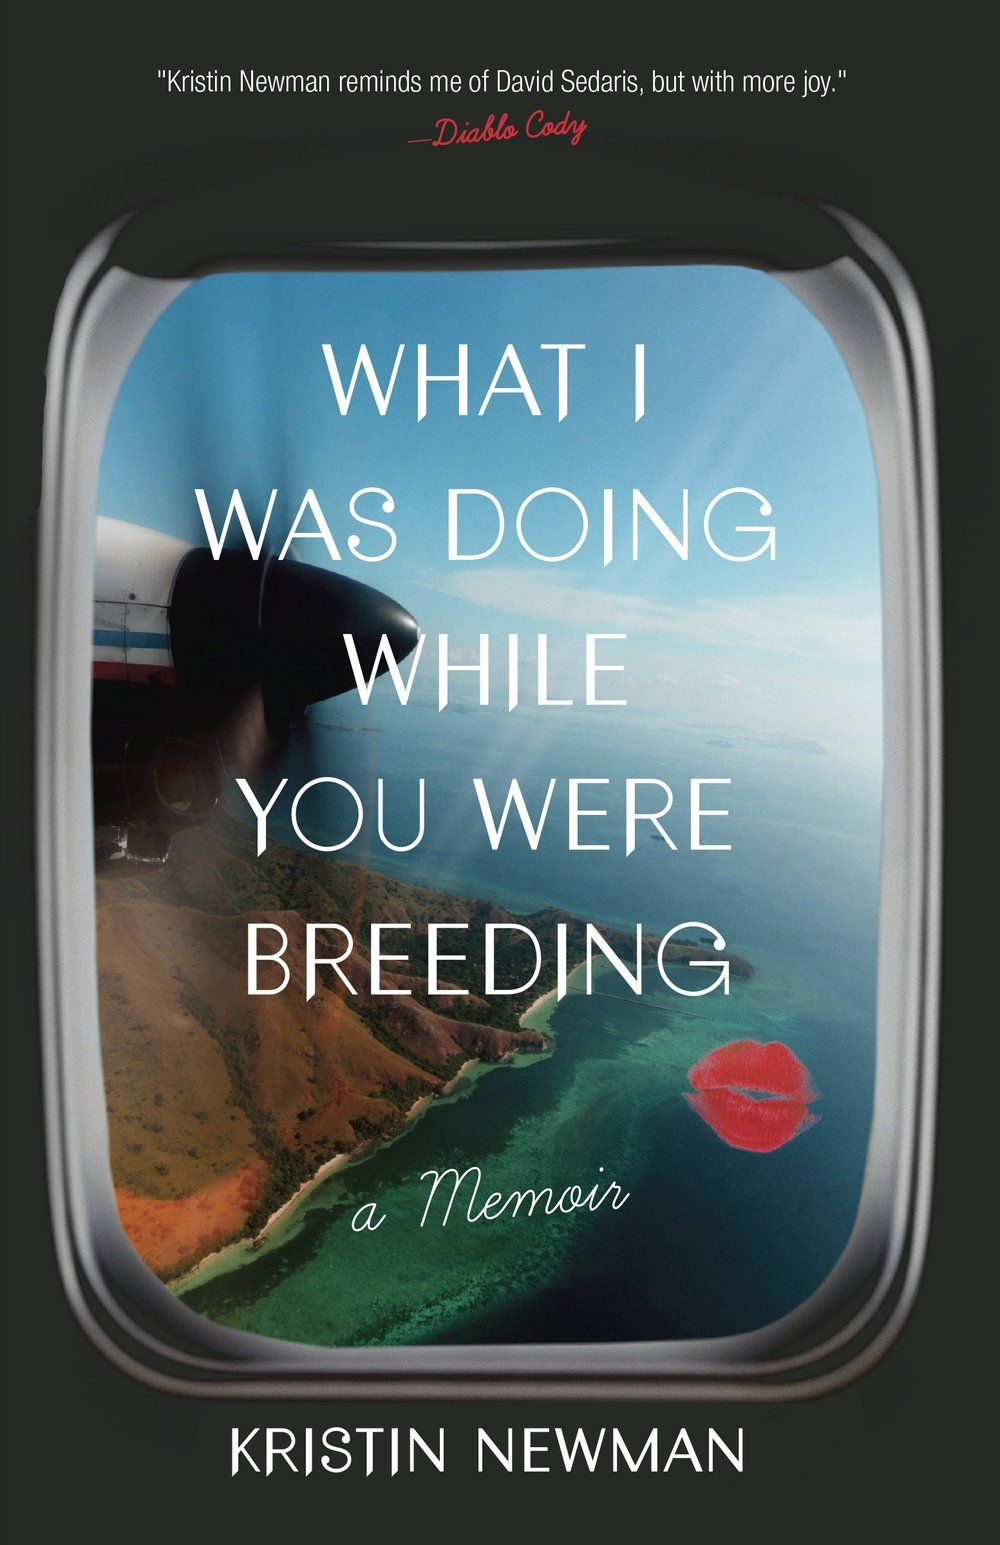 Inspiring Travel Memoirs - What I Was Doing While You Were Breeding by Kristin Newman